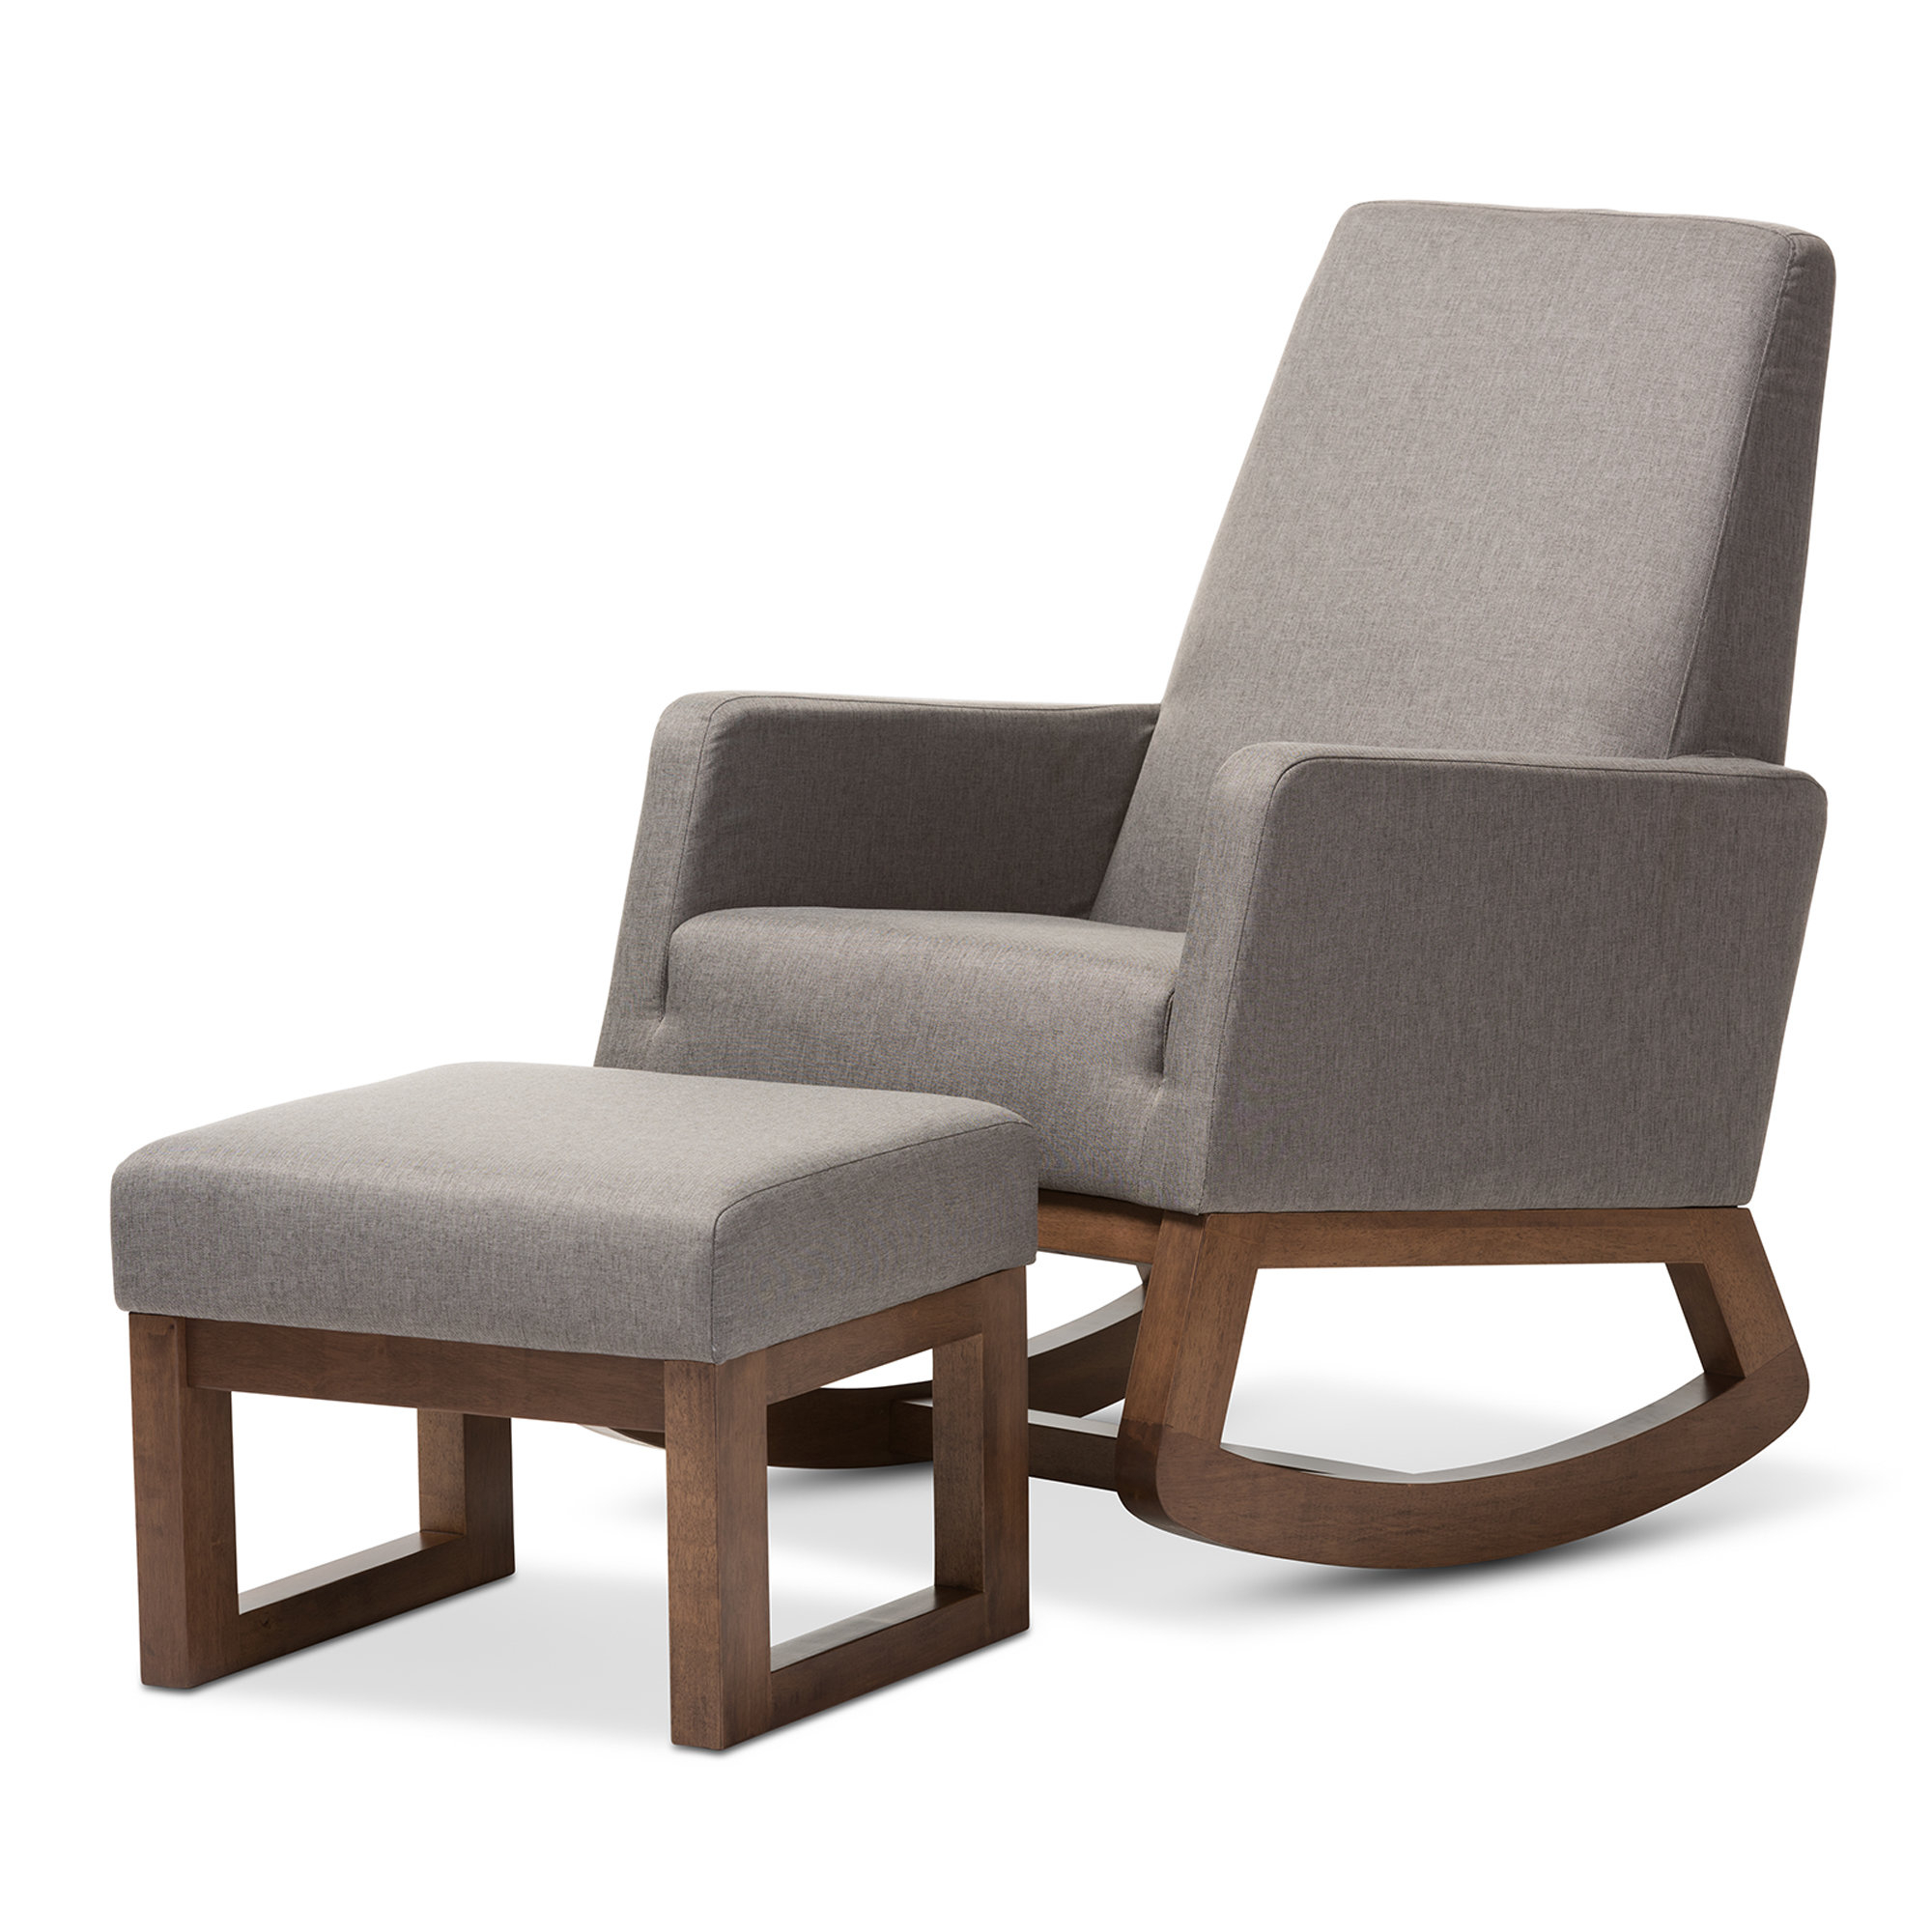 Modern & Contemporary Upholstered Rocking Chairs | Allmodern For Mid Century Fabric Rocking Chairs (View 19 of 20)